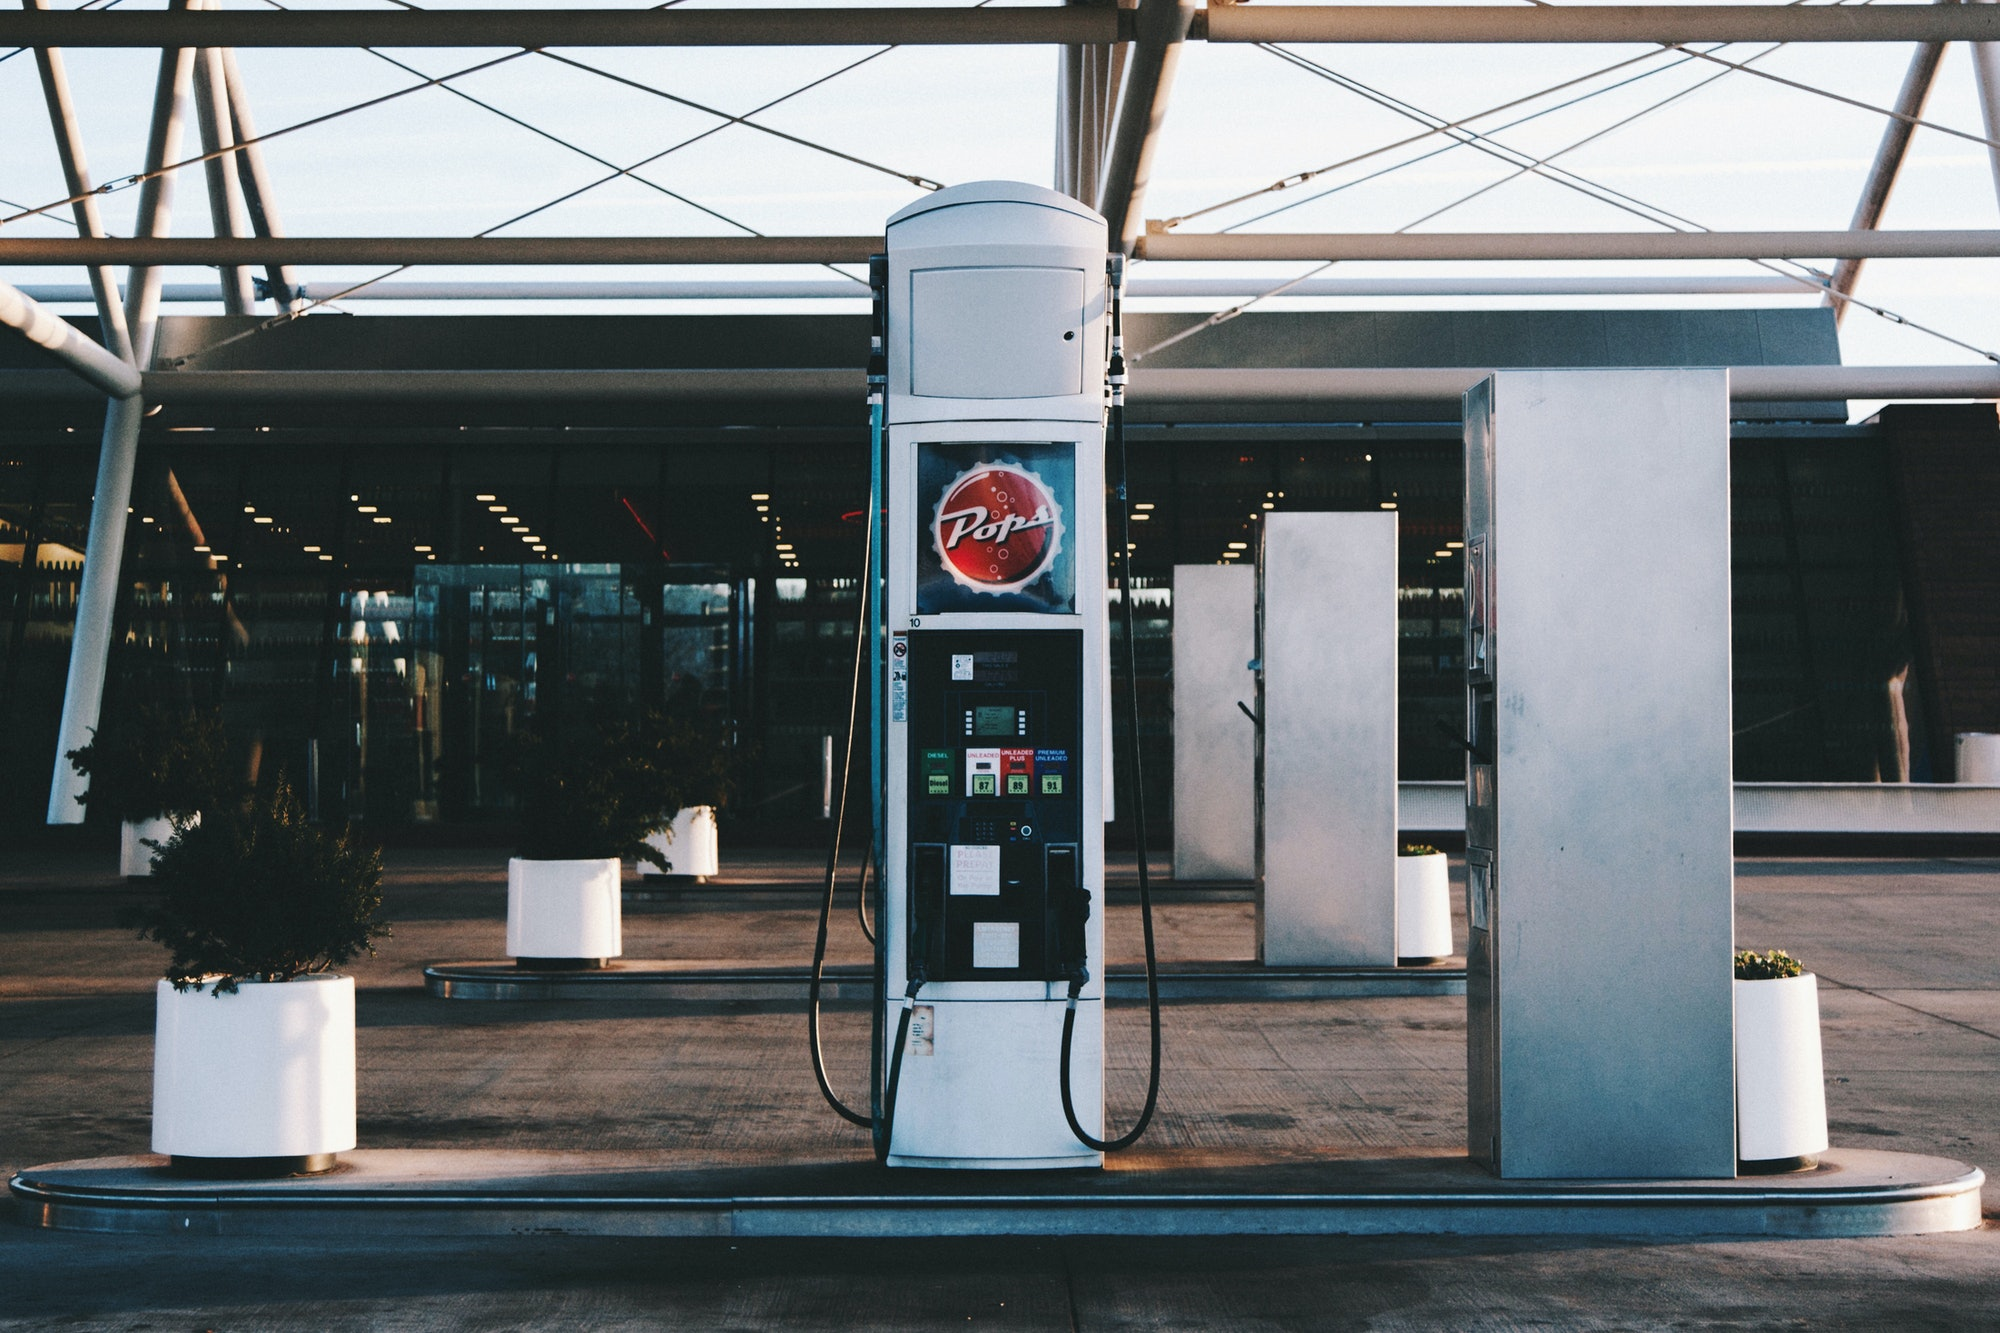 A fossil fuel pump: technology of the past?